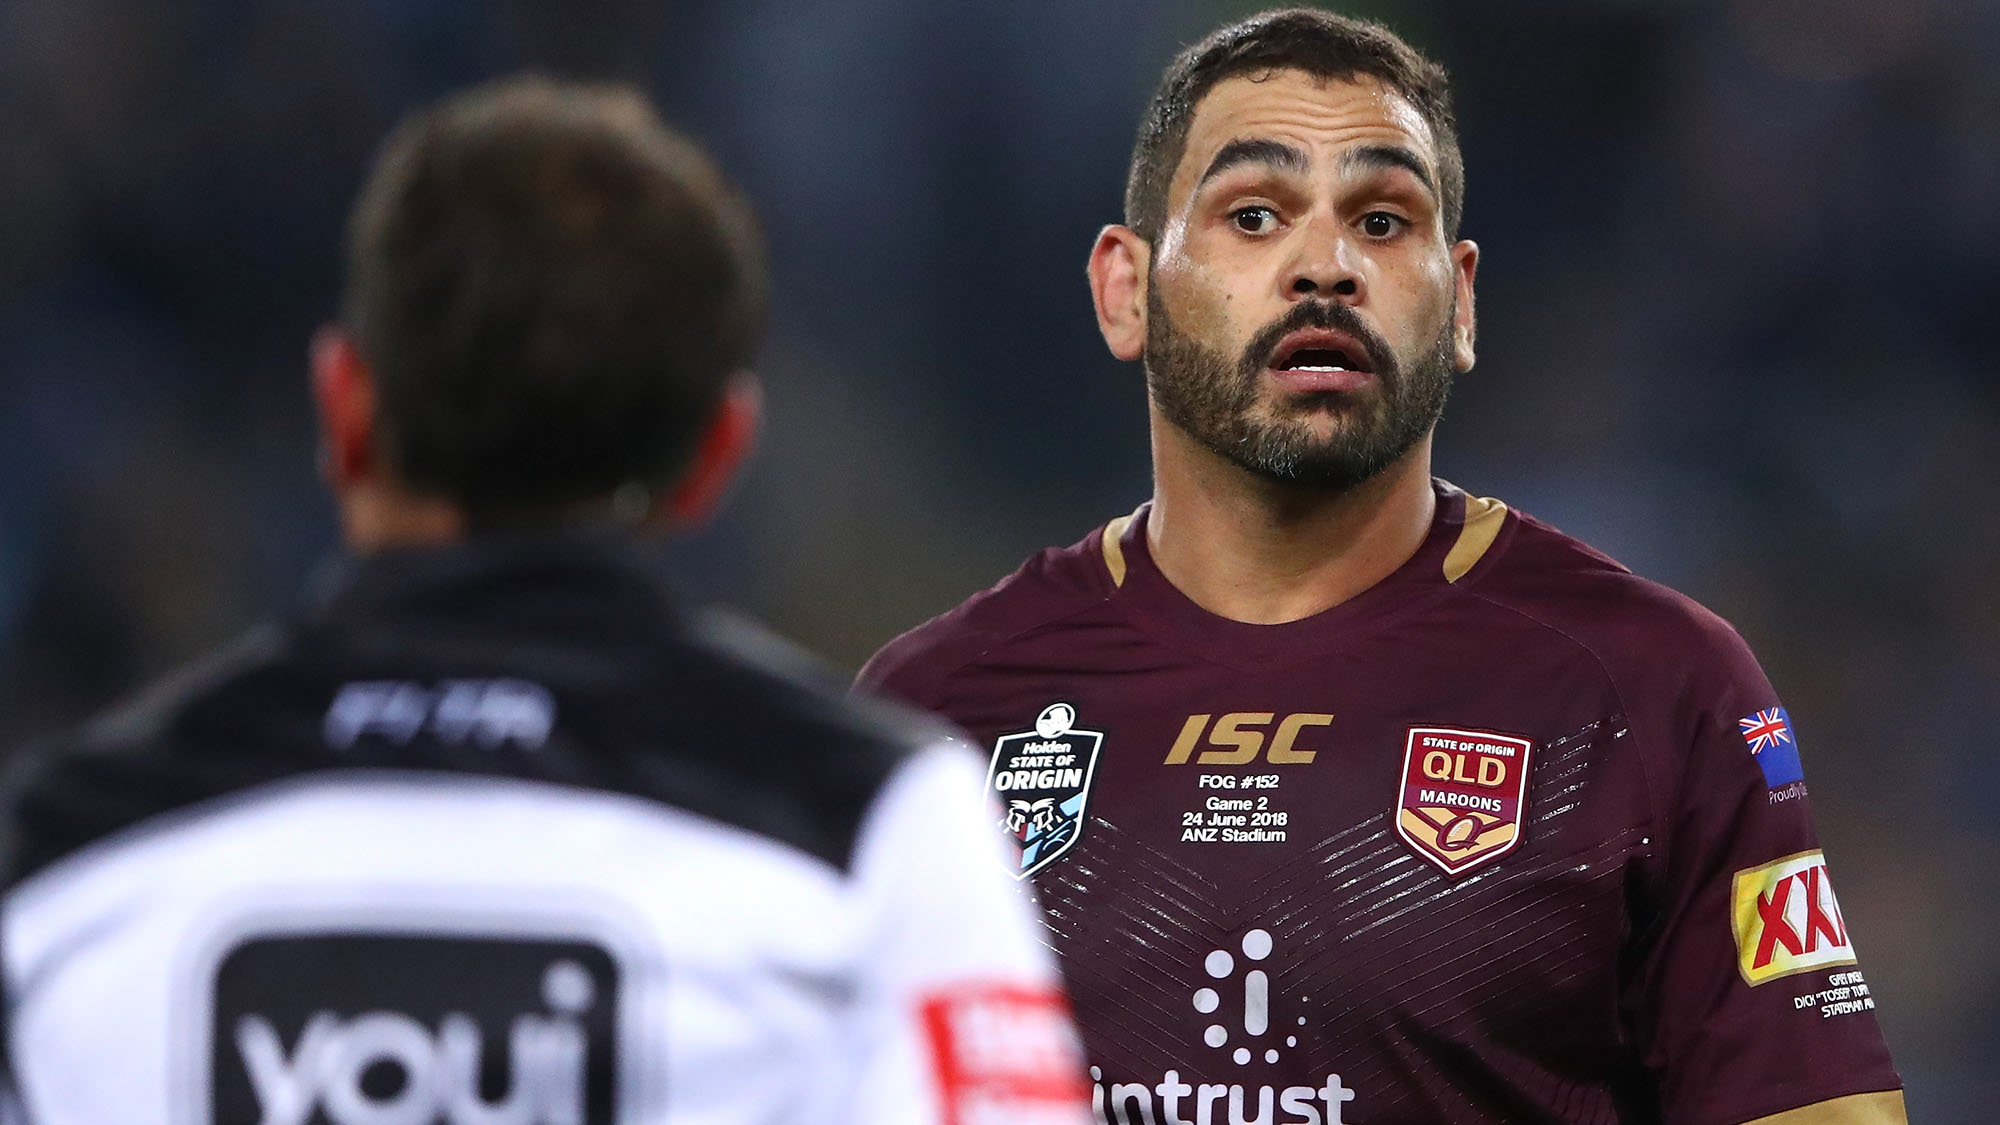 Greg Inglis to captain Maroons in 2019 despite DUI controversy, QRL boss says